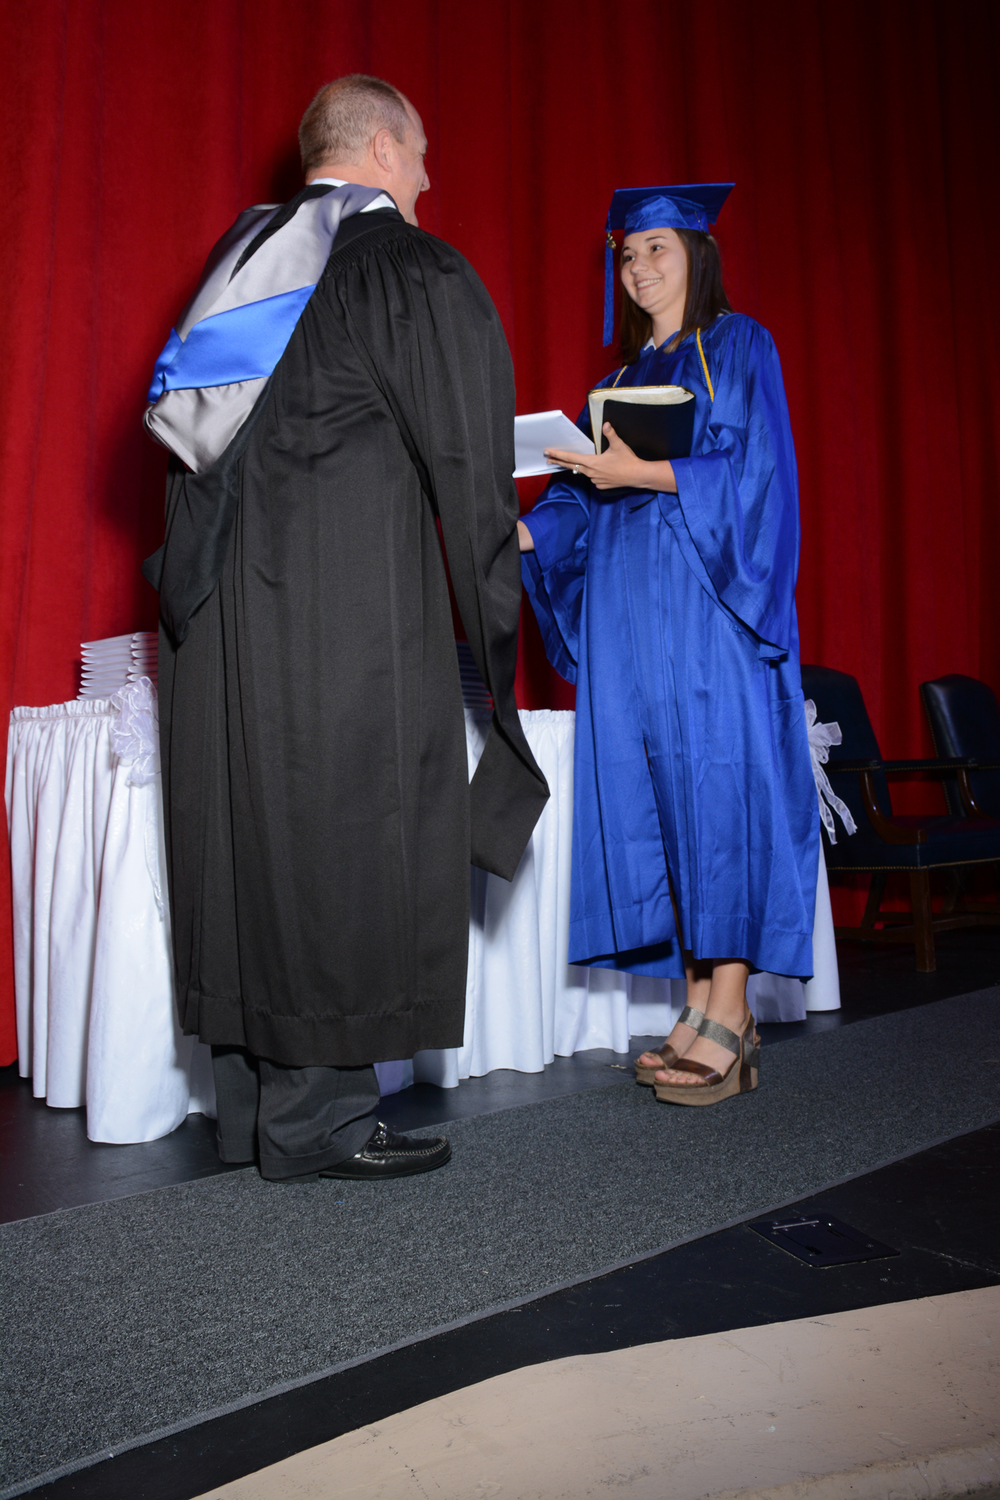 May16 GraduationPhotos126.jpg